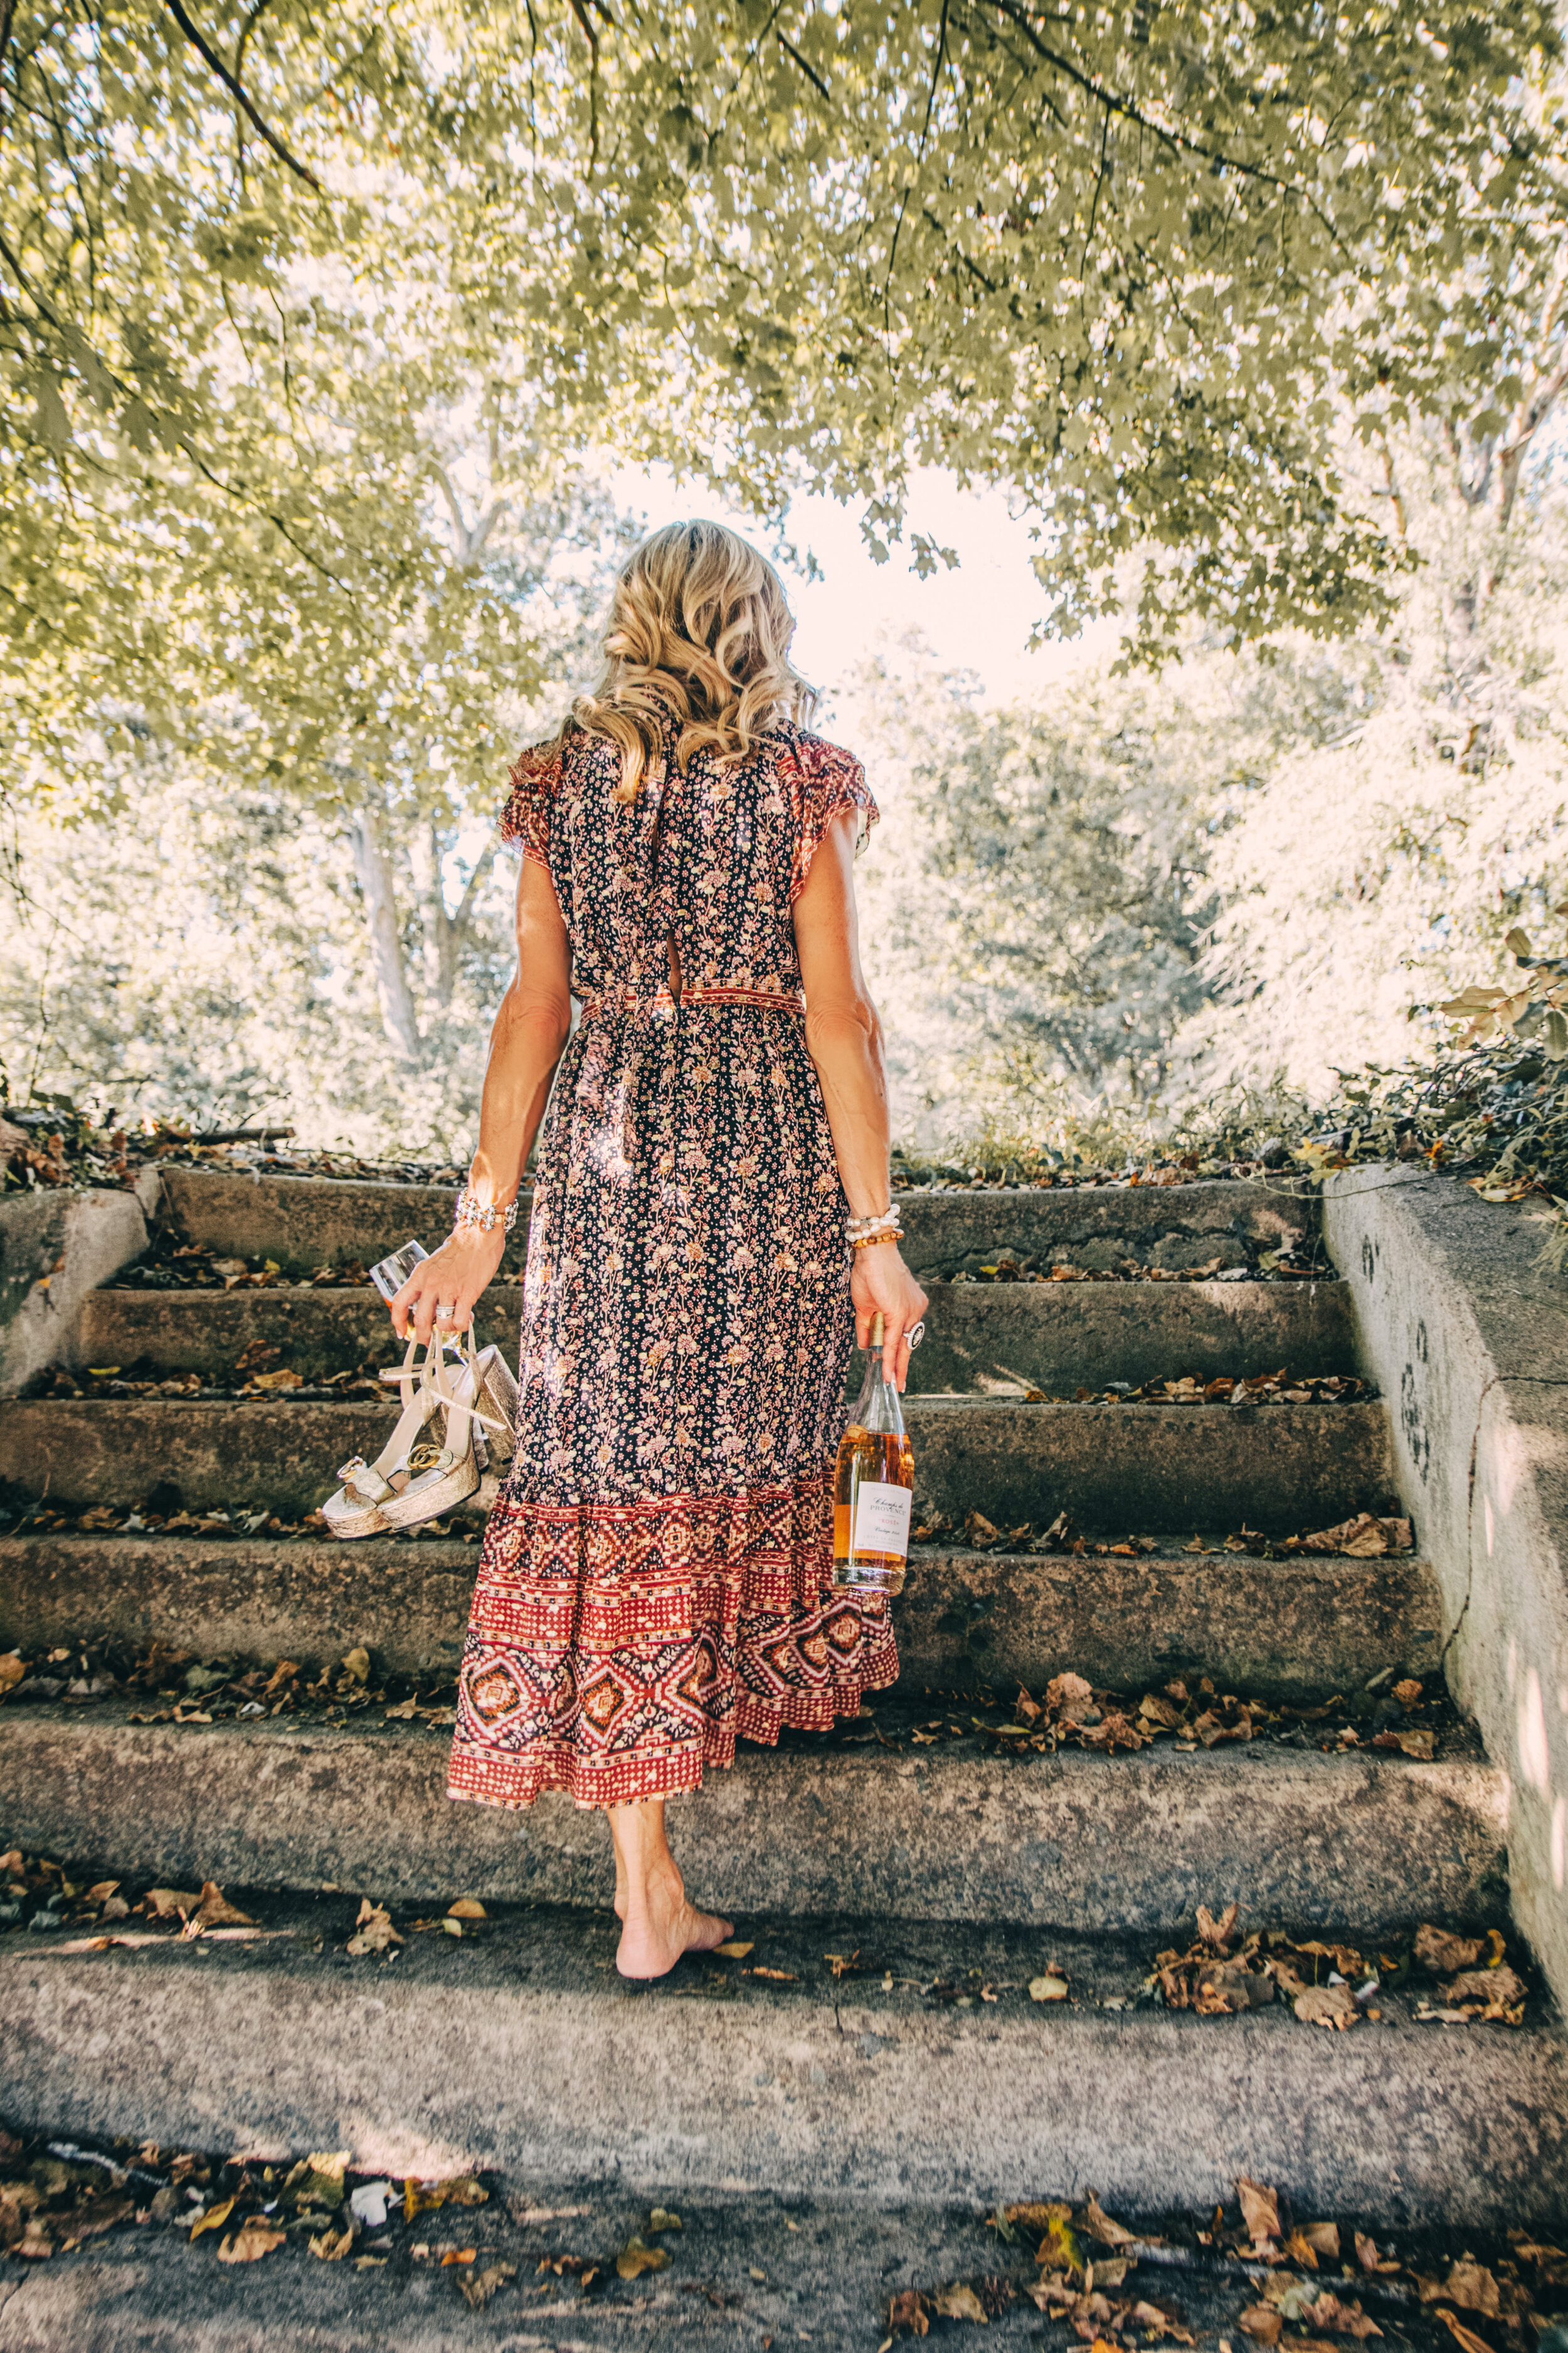 Romantic Picnic with Ulla Johnson dress and Pandora de Balthazar linens - Crazy Blonde Life